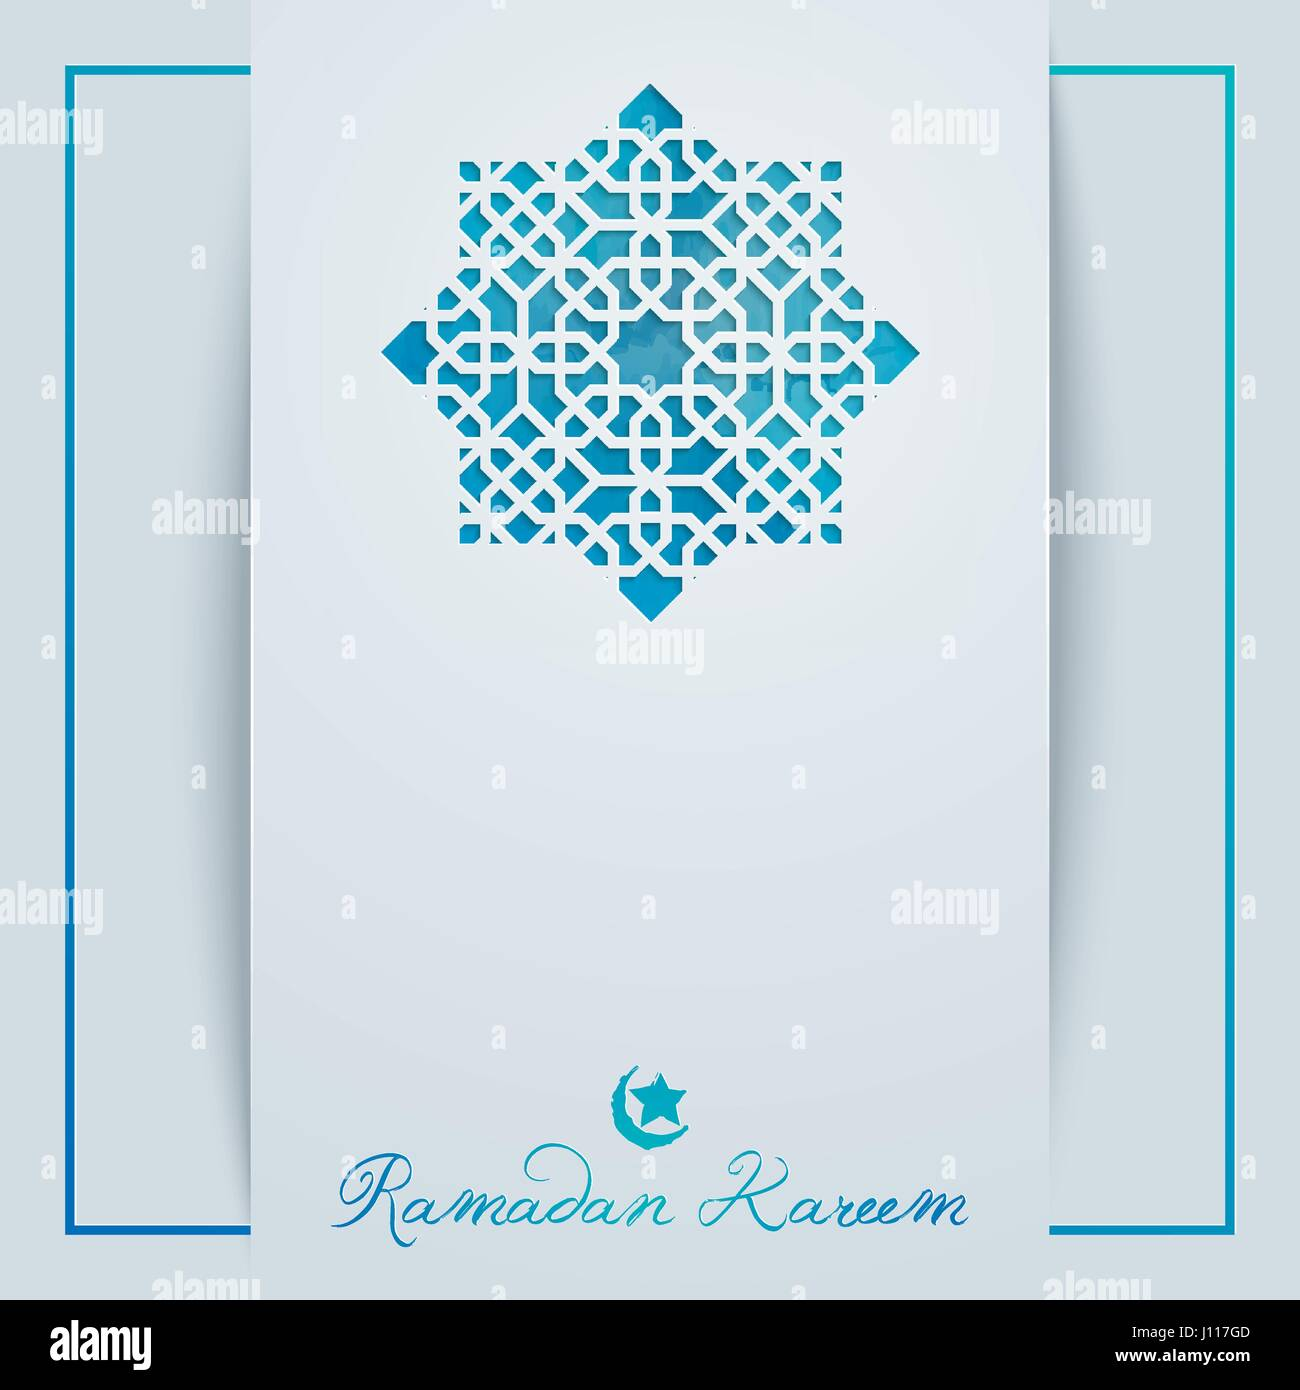 Image Result For Islamic Month A